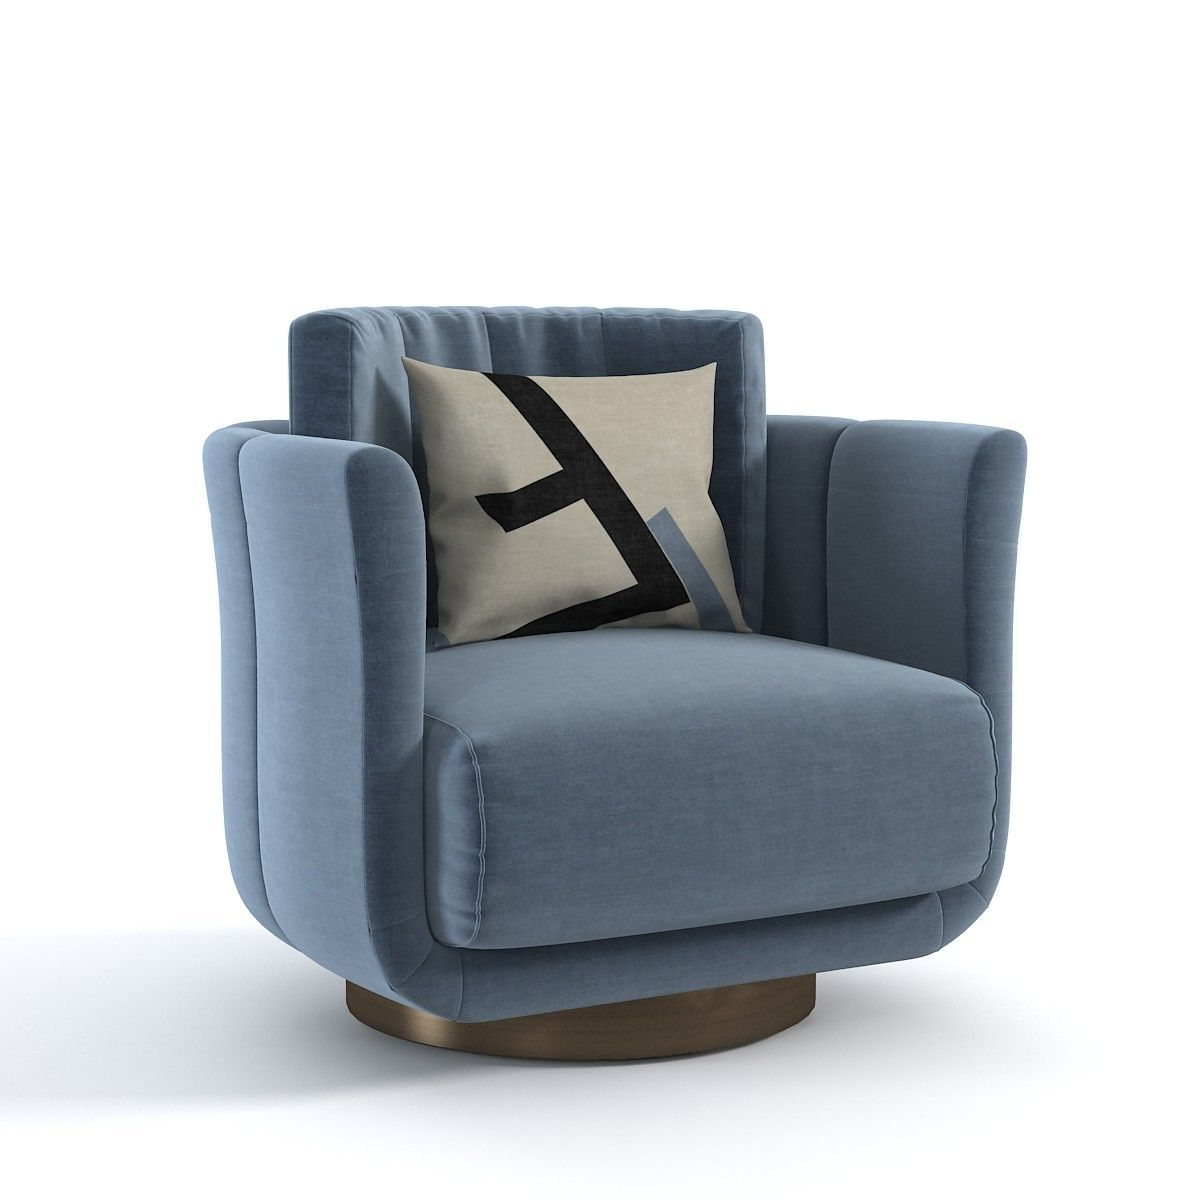 2019 Hutchinsen Polyester Blend Armchairs With Regard To Fendi Casa Artu 3d Model #sofachair (View 10 of 20)